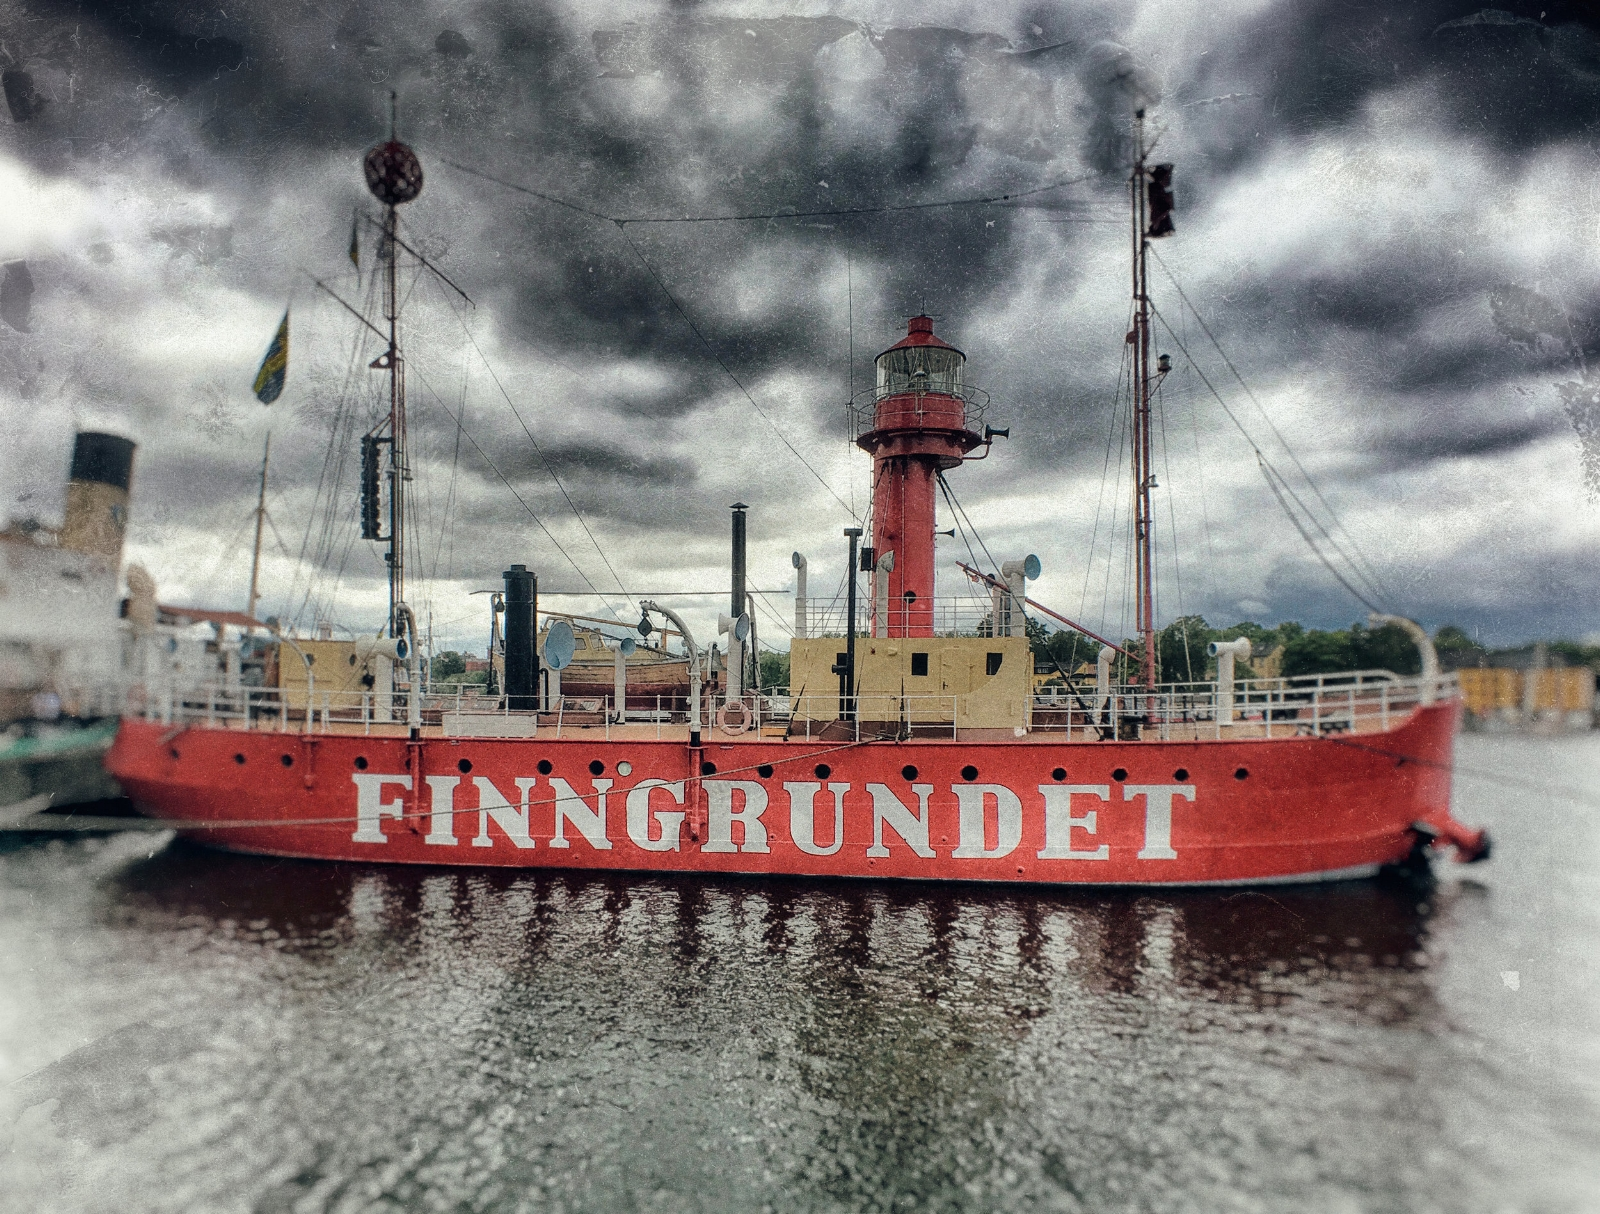 The  Finngrundet  lightvessel, built in 1903, and now a floating museum.